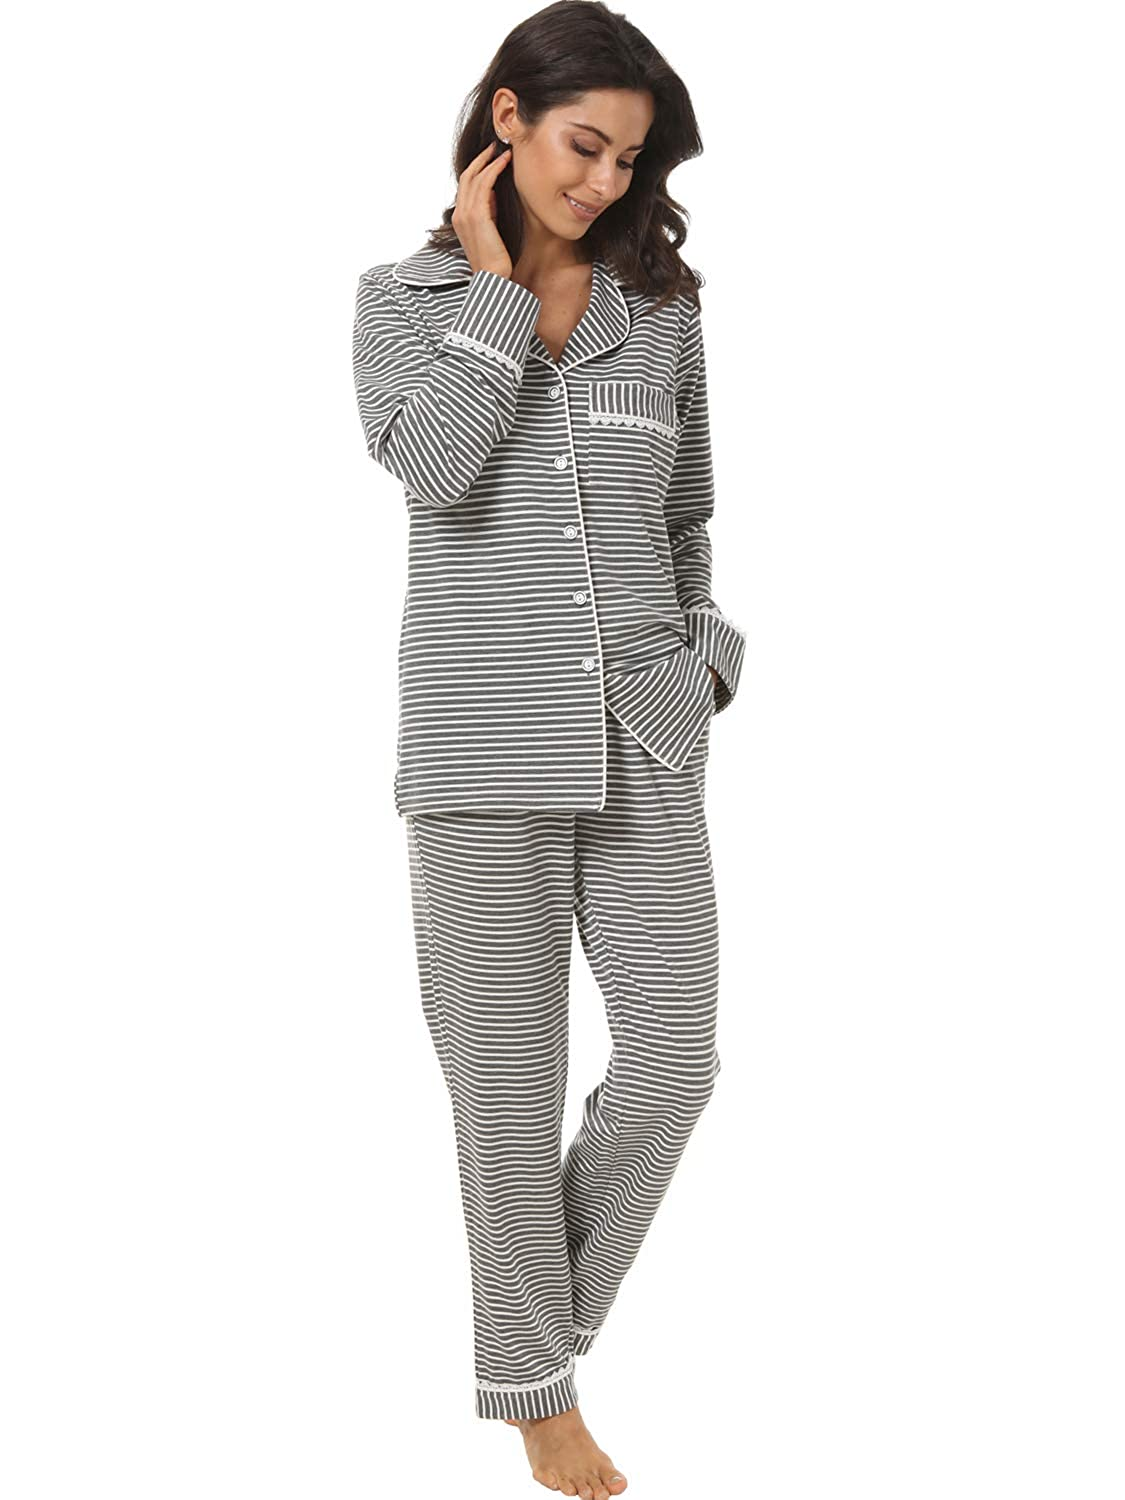 Espoir Womens 2 Piece Classic Cotton Long Sleeve Button-Down Soft Pajama Set PJ001